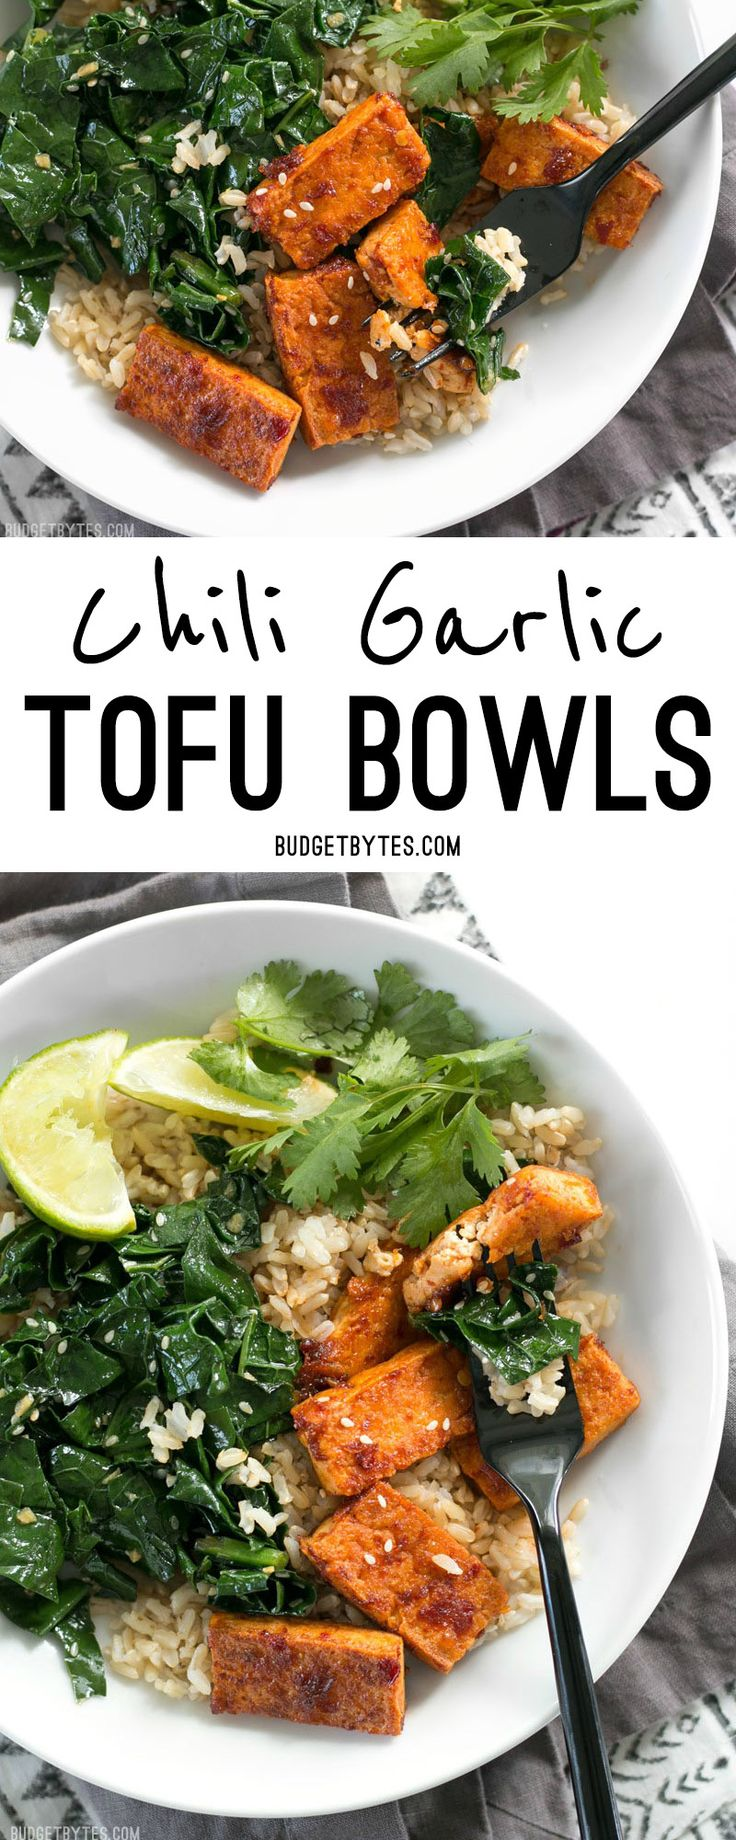 Chili Garlic Tofu Bowls are a fiber and flavor filled healthy lunch that you can pre-pack for your week ahead. @budgetbytes